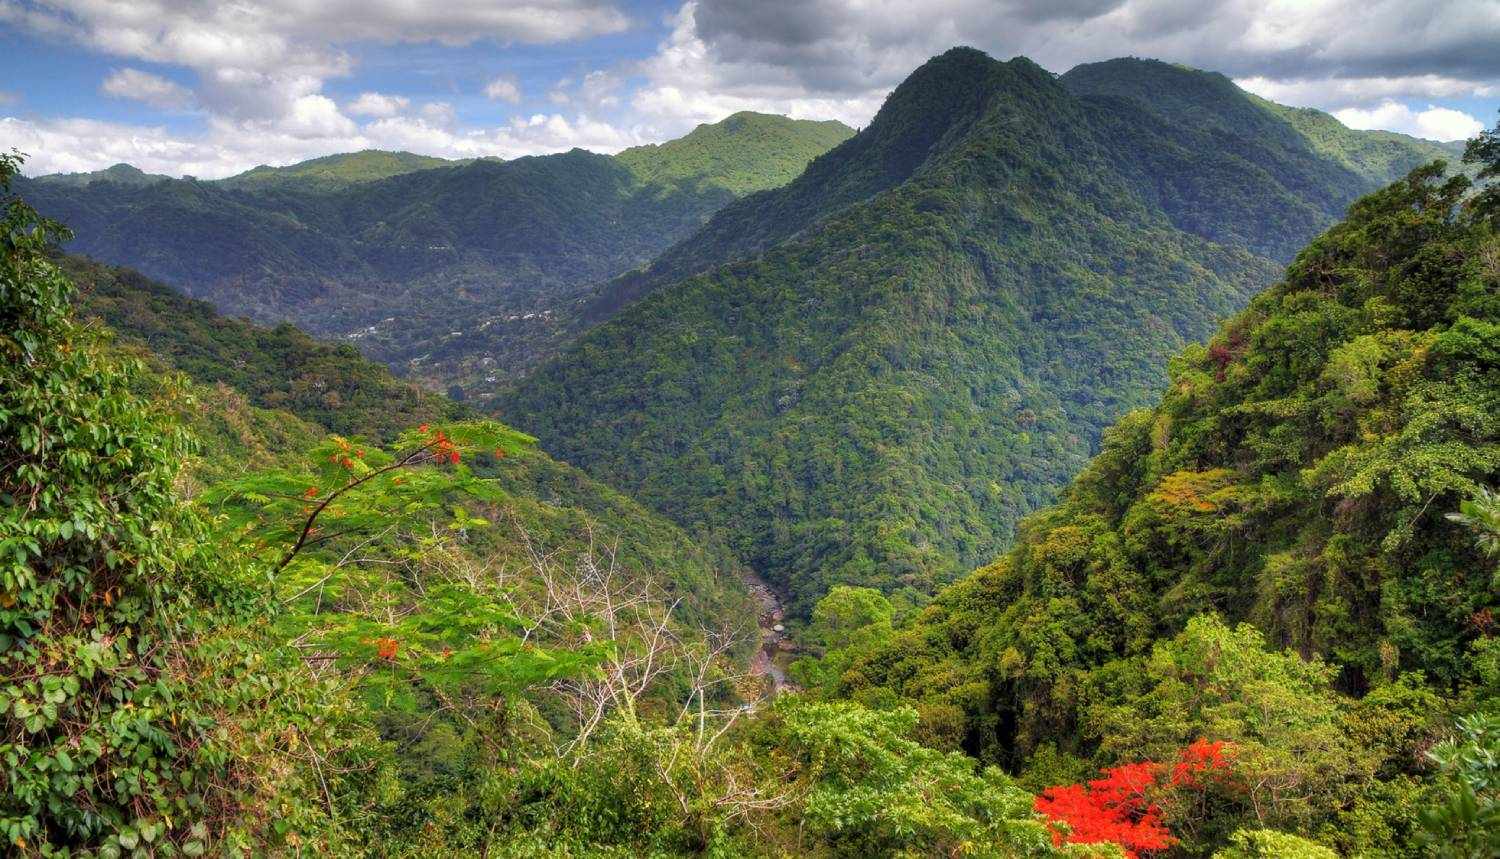 El Yunque Rainforest - Things To Do In San Juan